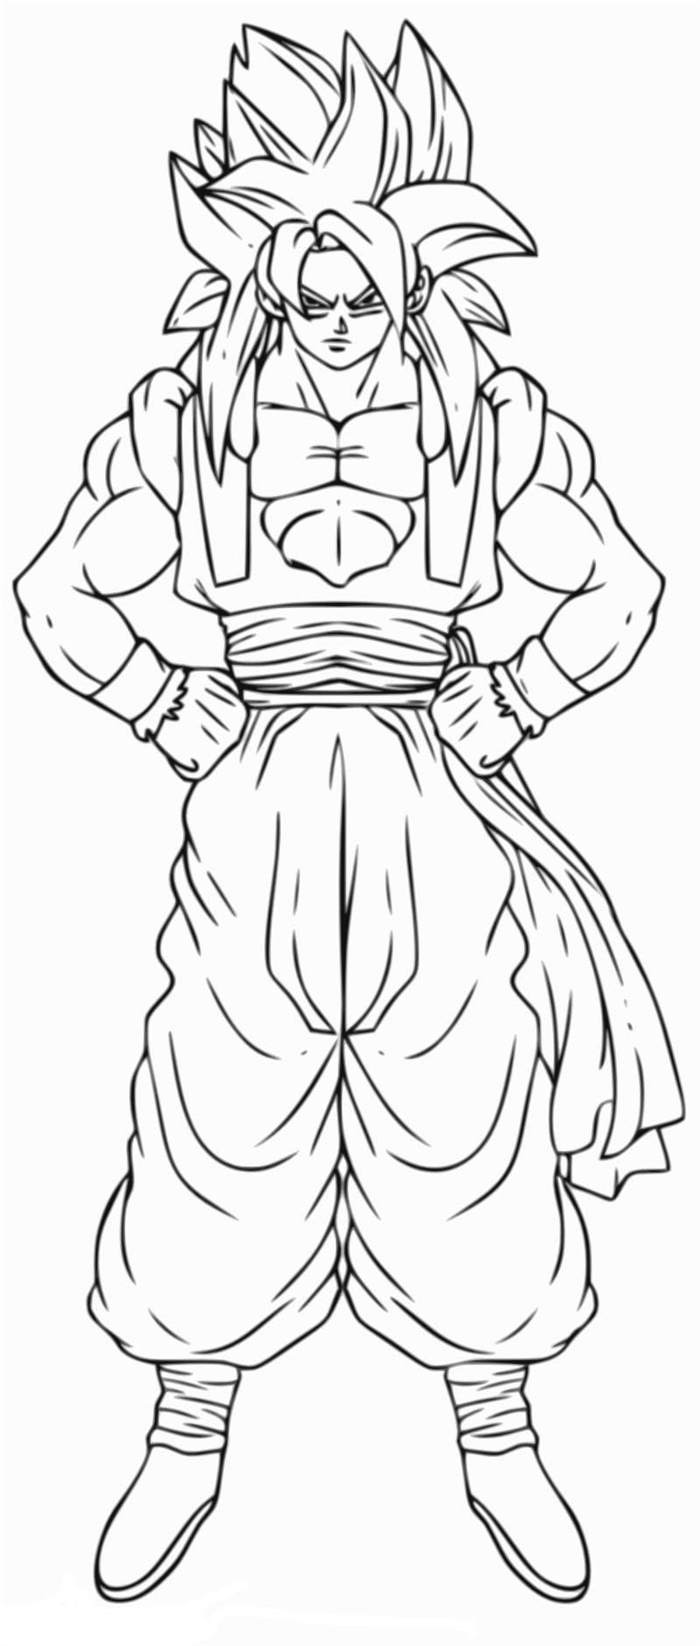 Free Inspirational Dragon Ball Z Coloring Pages Linear printable